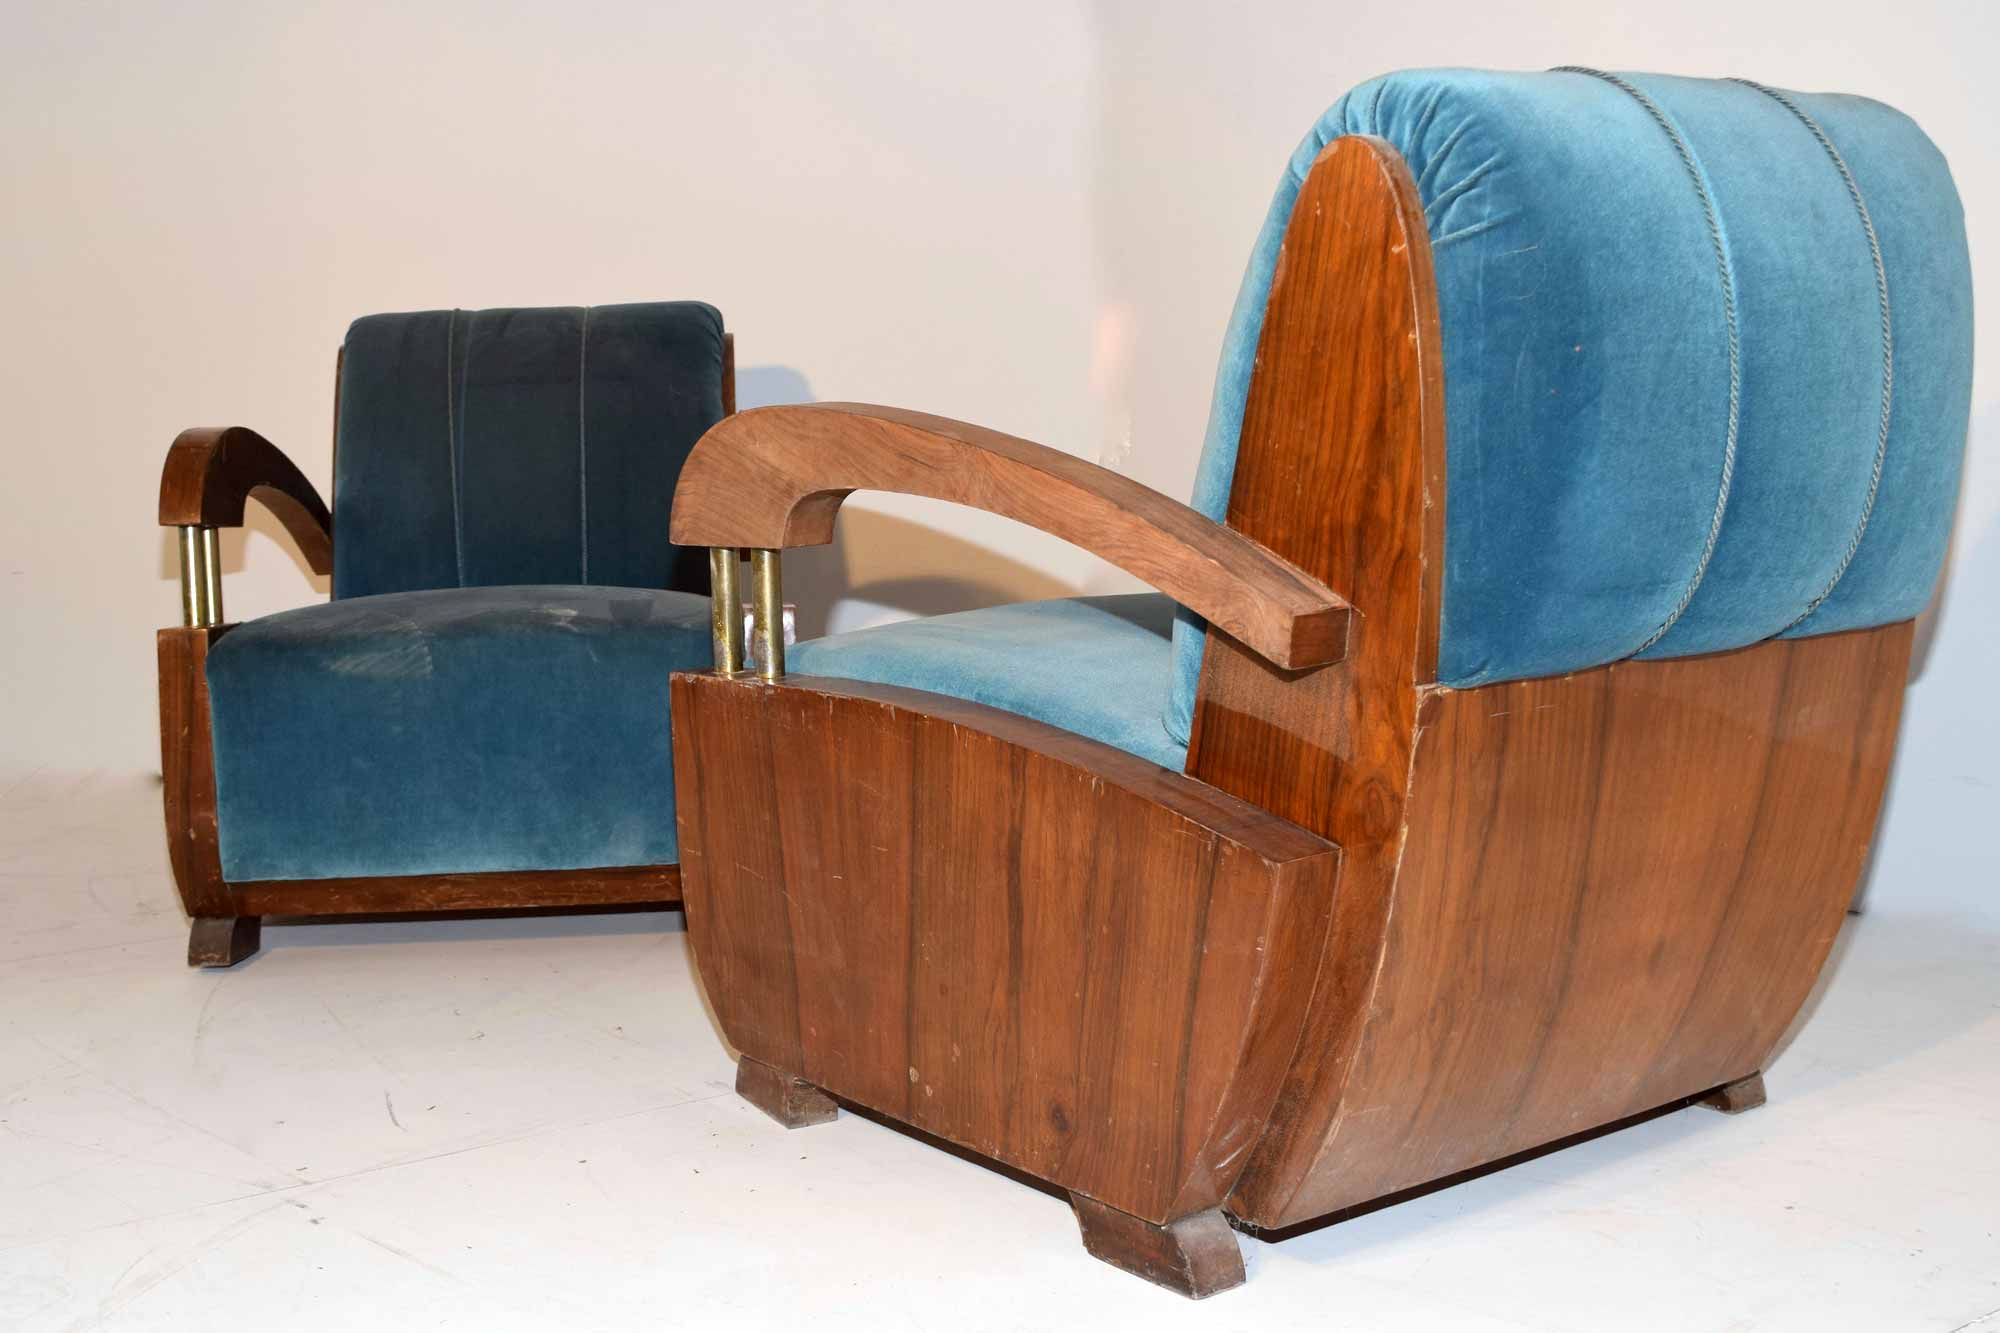 Sessel Art Deco Art Deco Sessel Paar Nussbaum B90xh88xt90 Panthers Woods